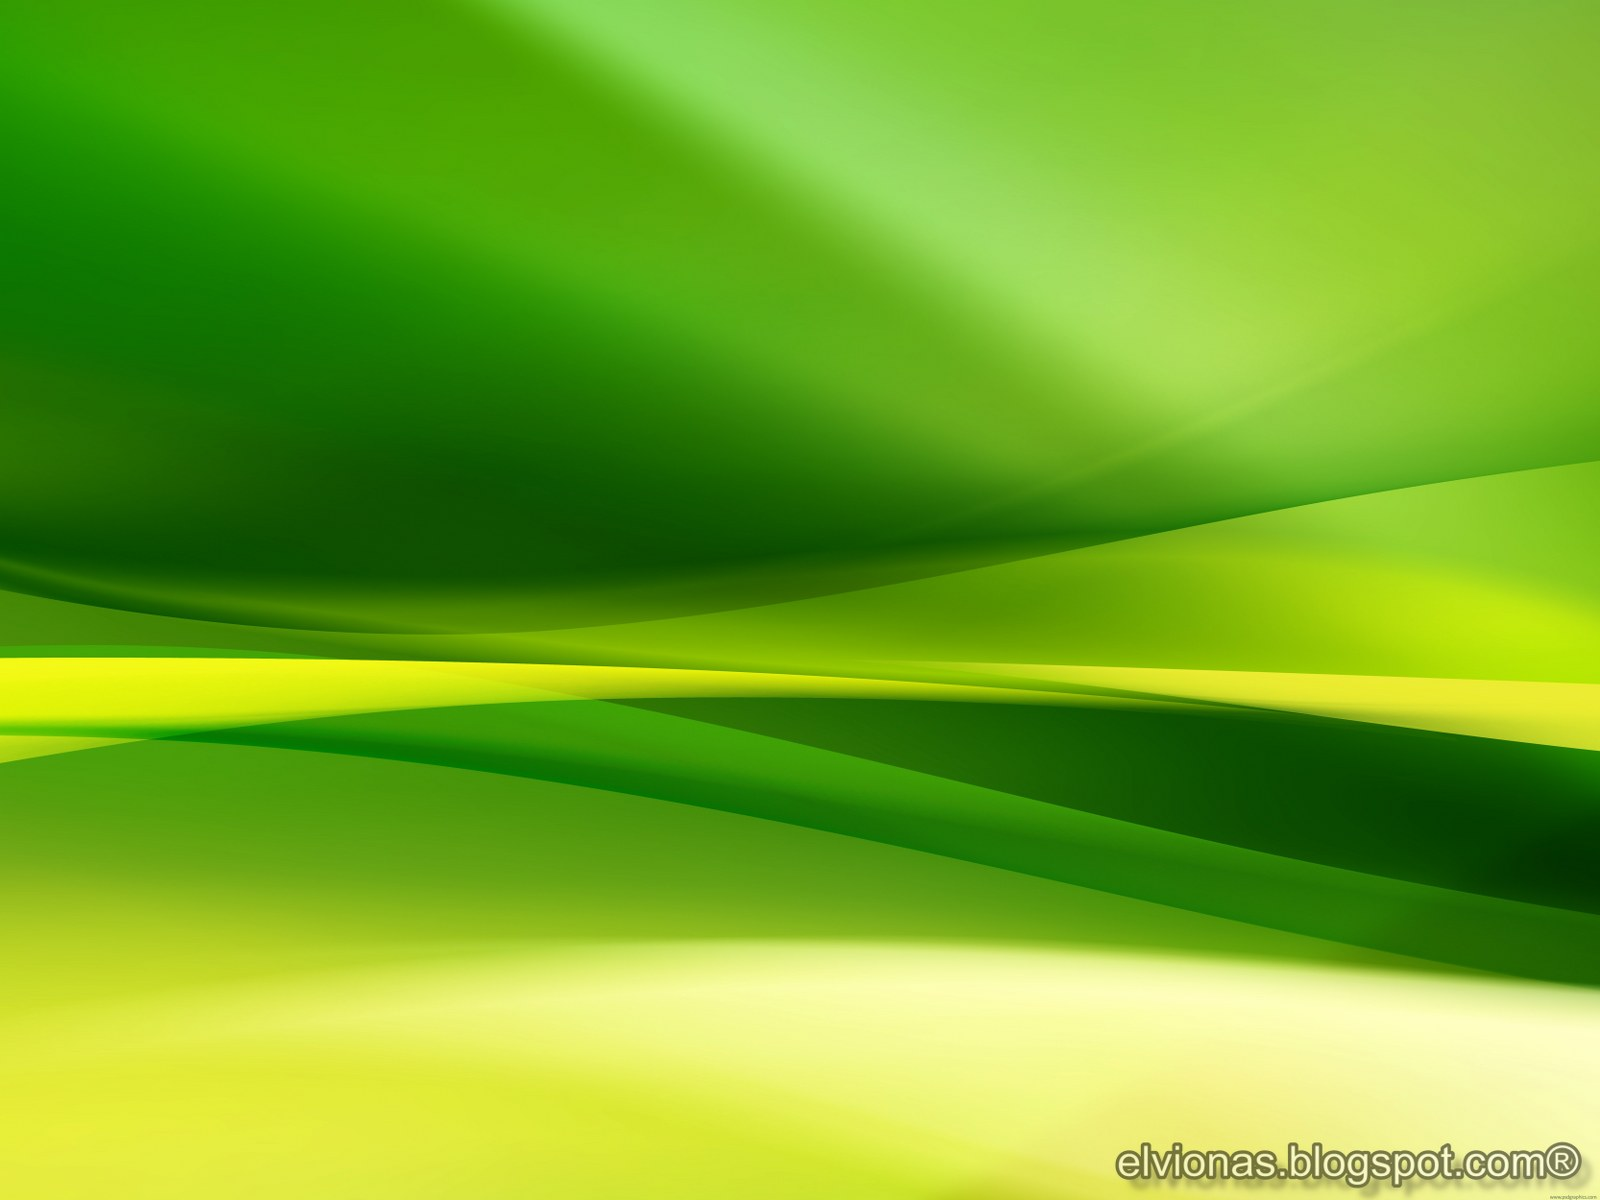 green background clipart - photo #25